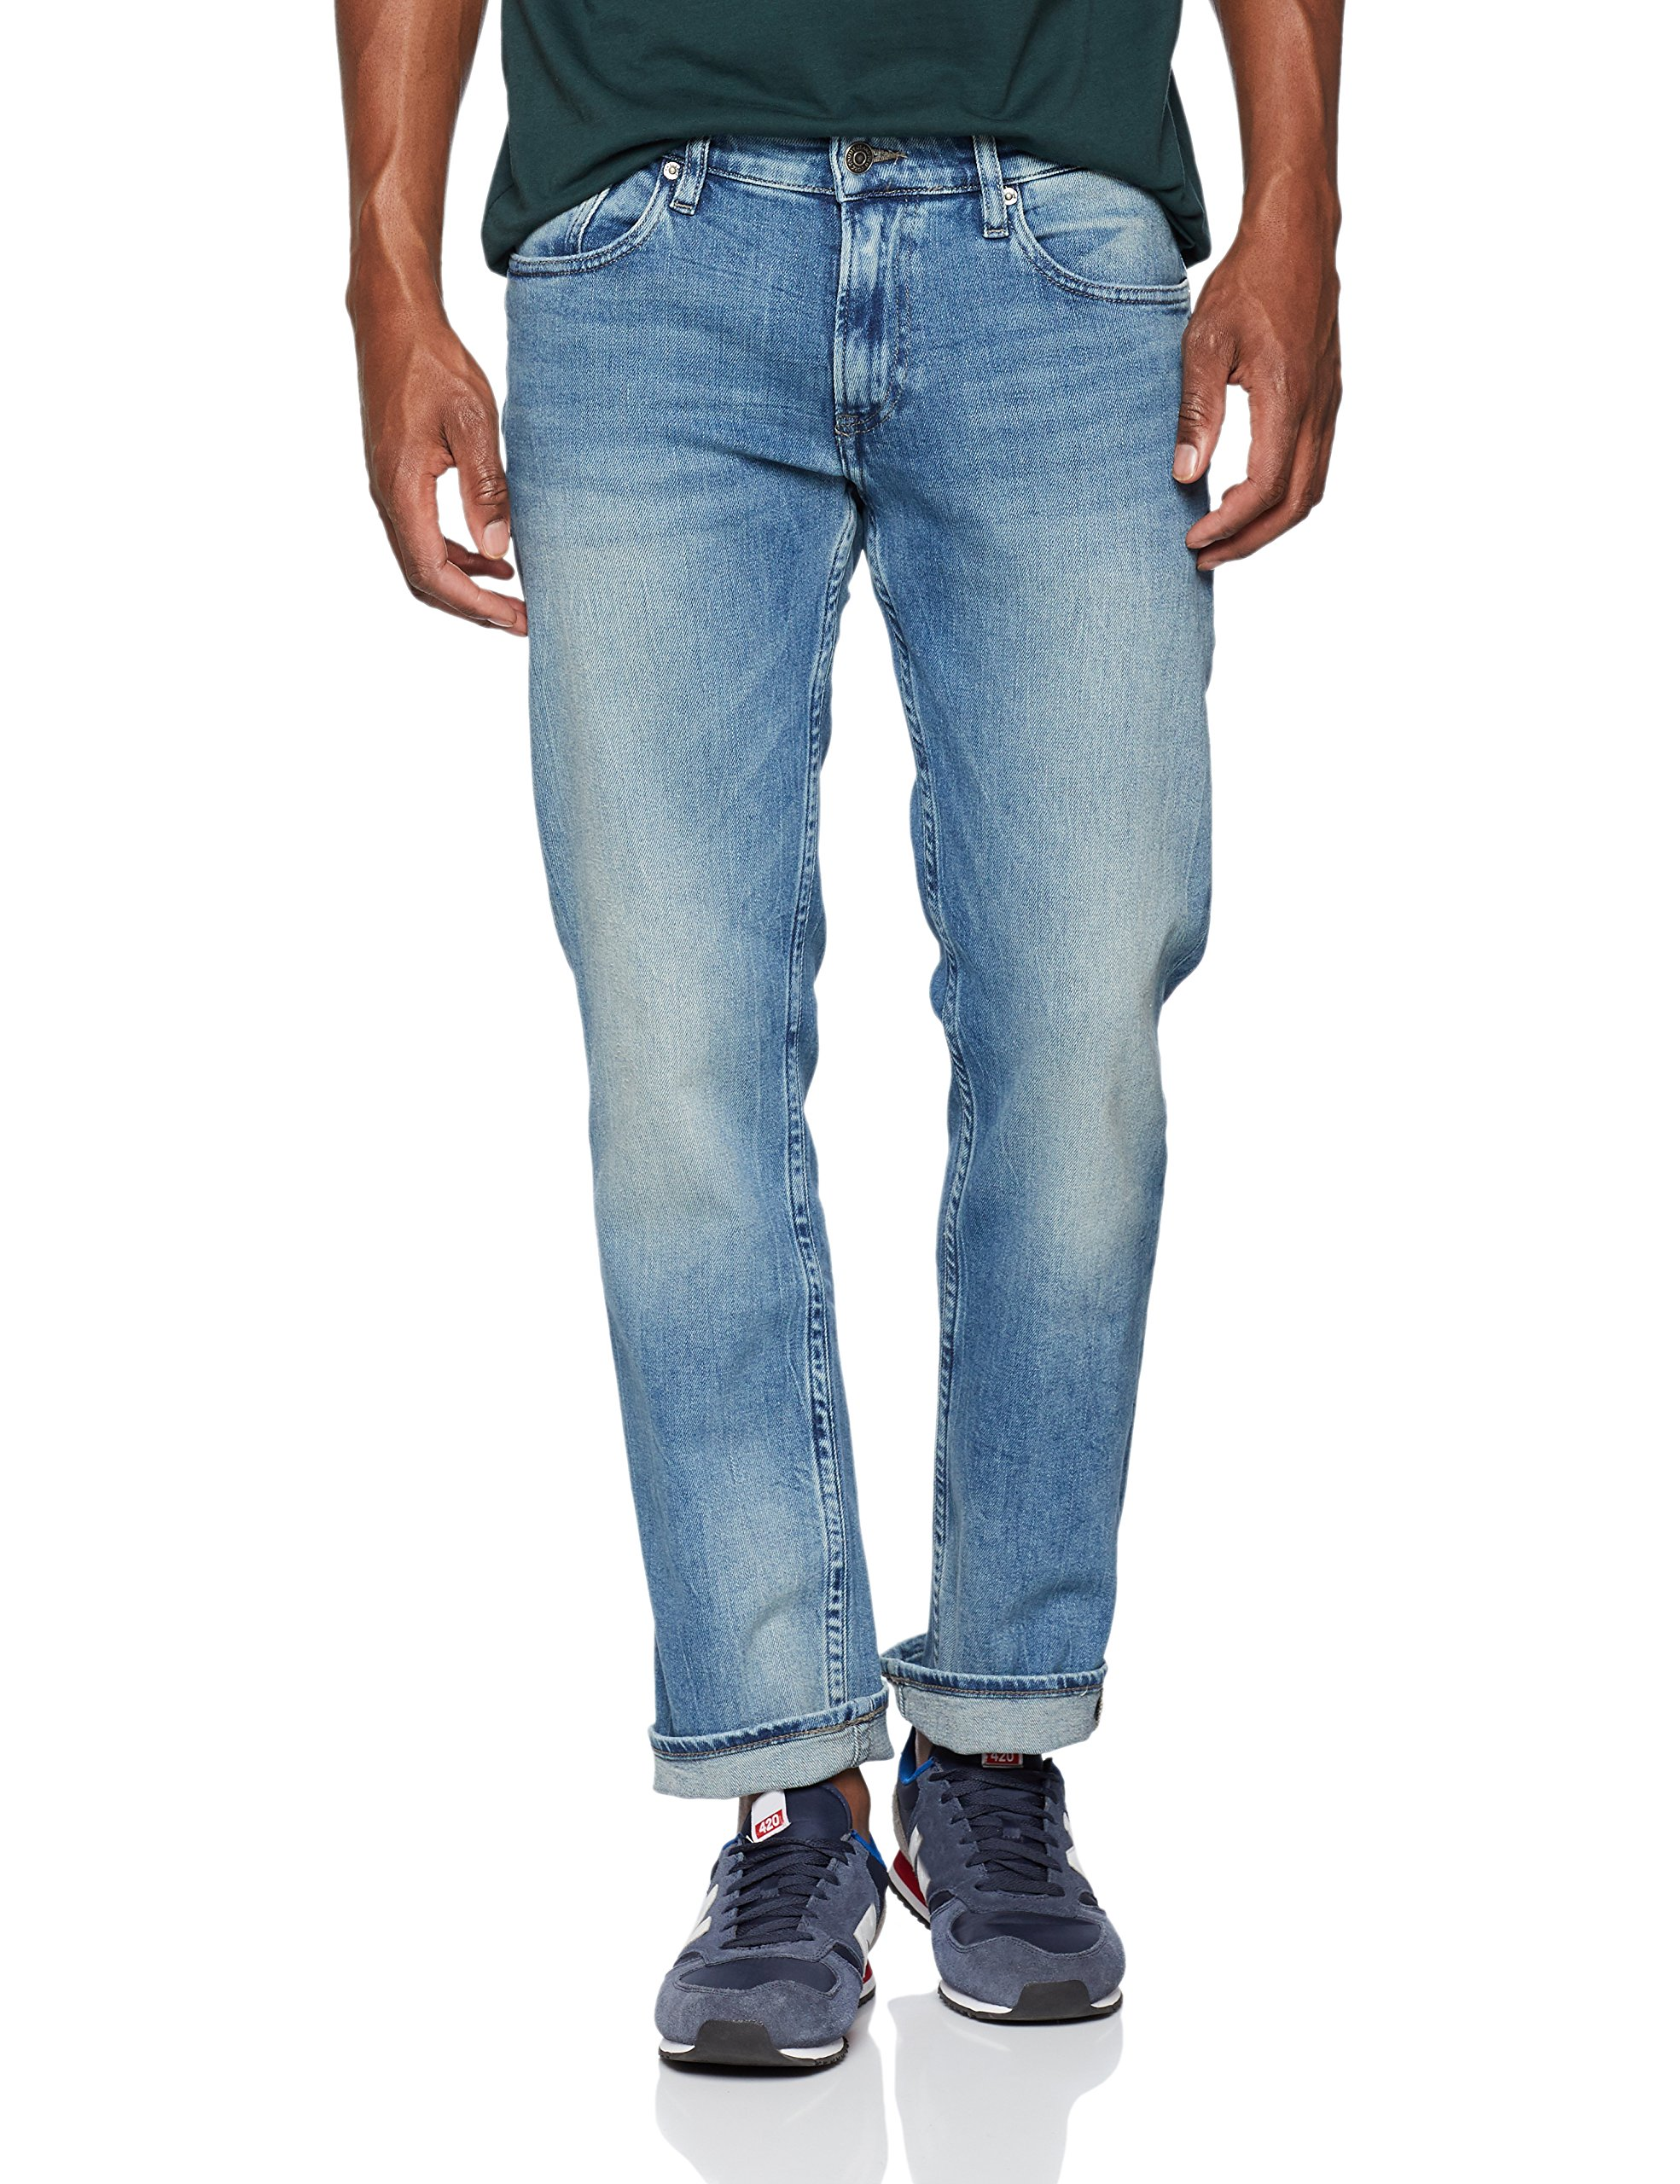 Jeans Bleusomers Homme 911W34 Straight Regular Droit Light l34 Tommy Blue Com Ryan nNw8OPkX0